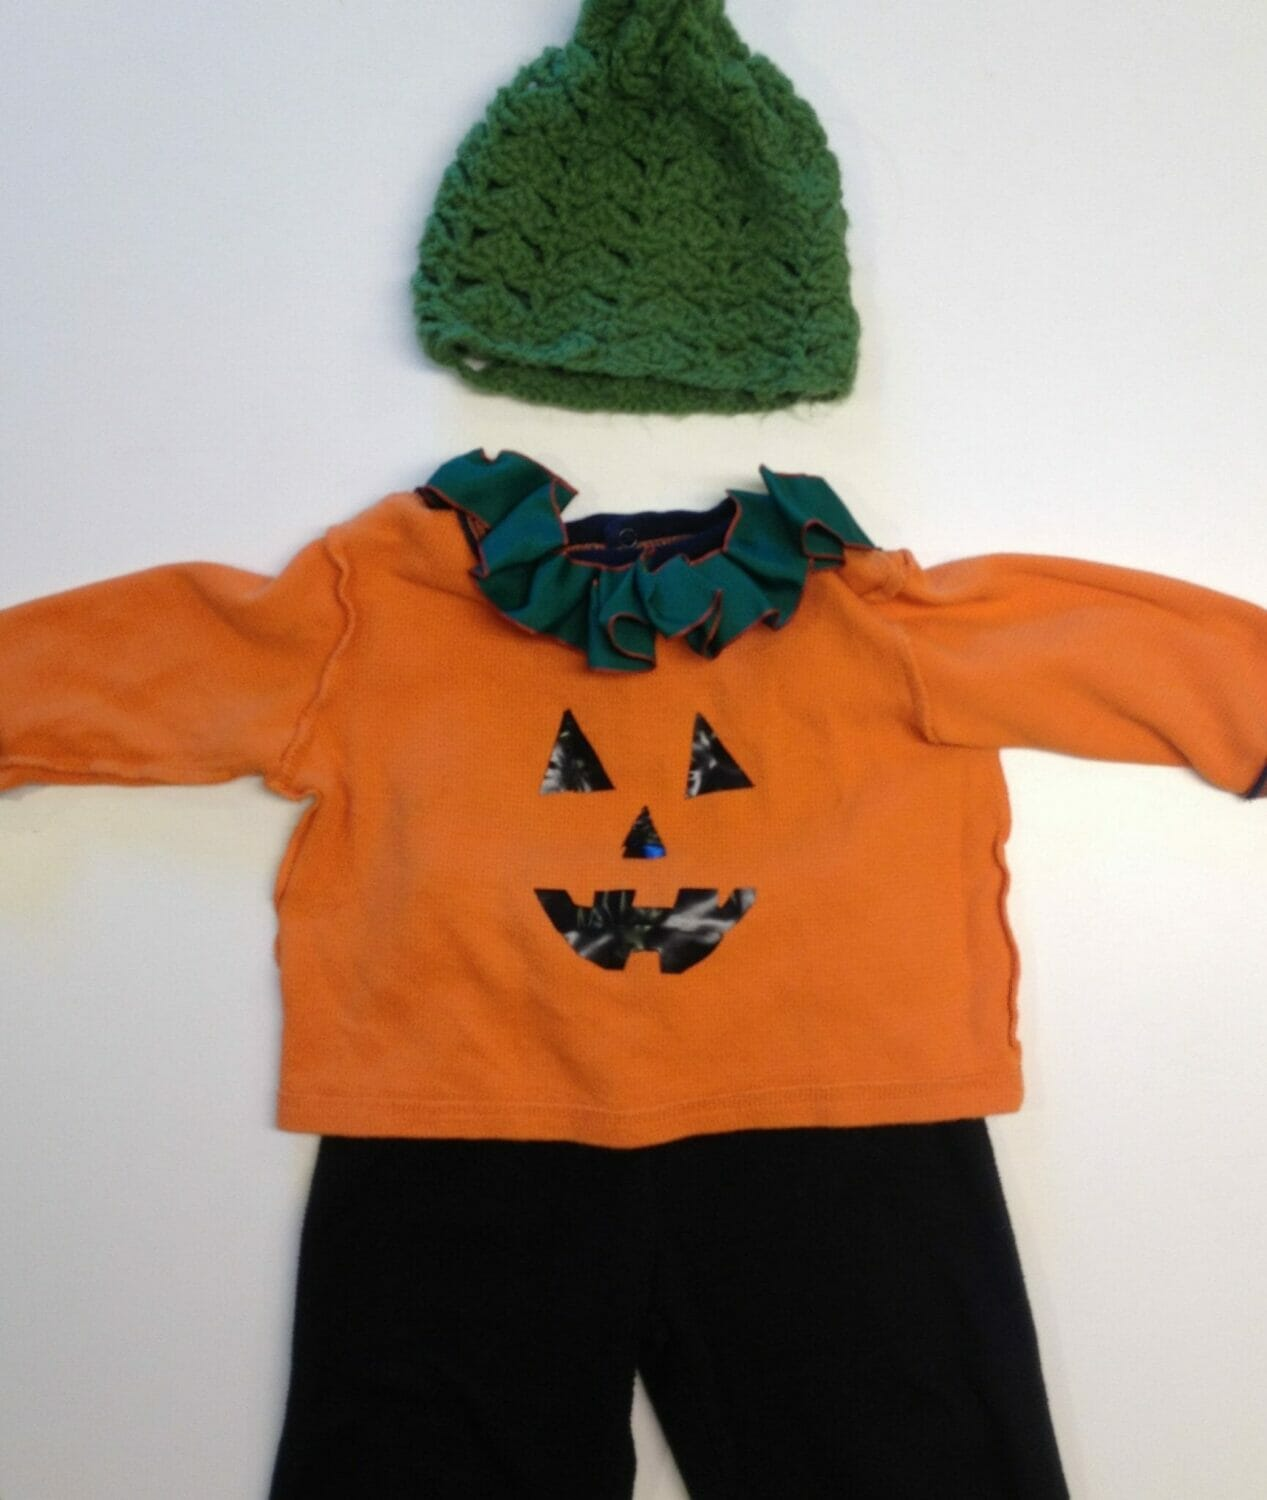 All you need to make a jack-o-lantern Halloween costume is an orange long-sleeve Tshirt, some black pants, black felt or tape, and scissors; the green ribbon collar and hand-crocheted hat are optional.